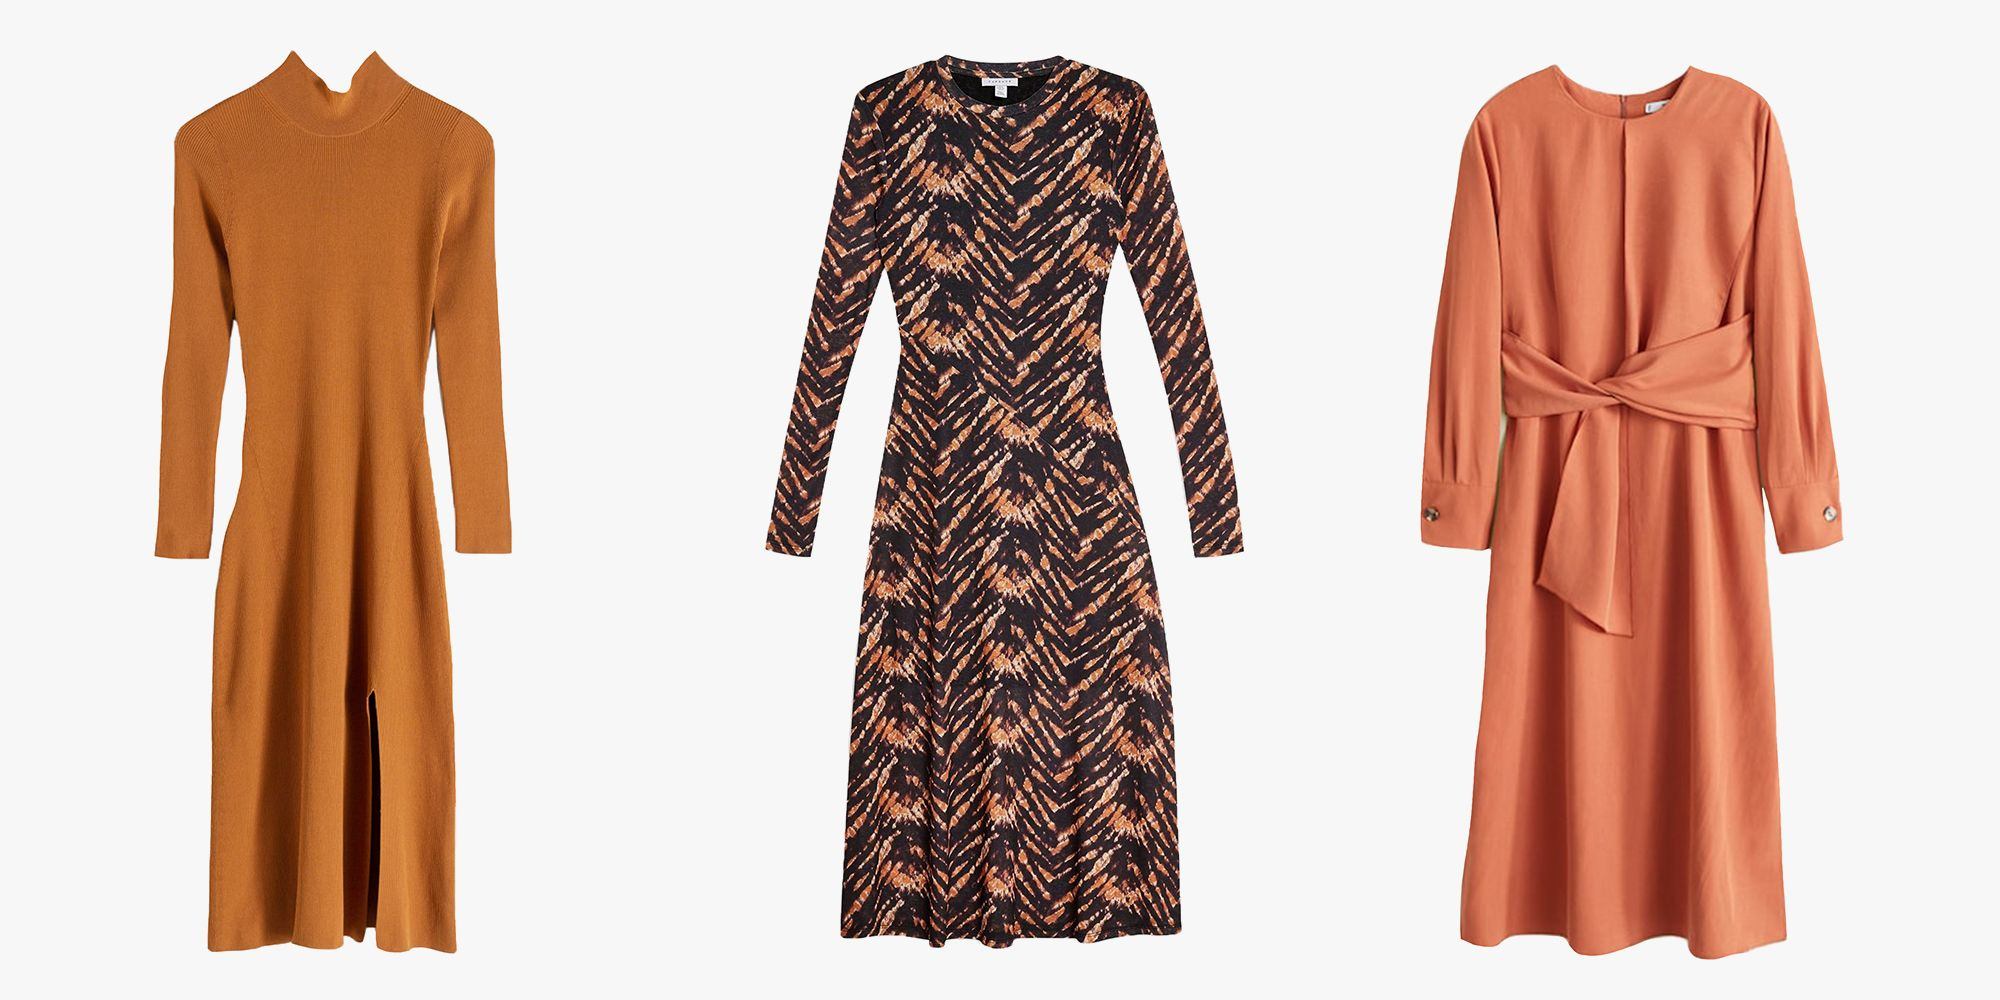 17 Winter Work Dresses That Don't Require a Desk Blanket